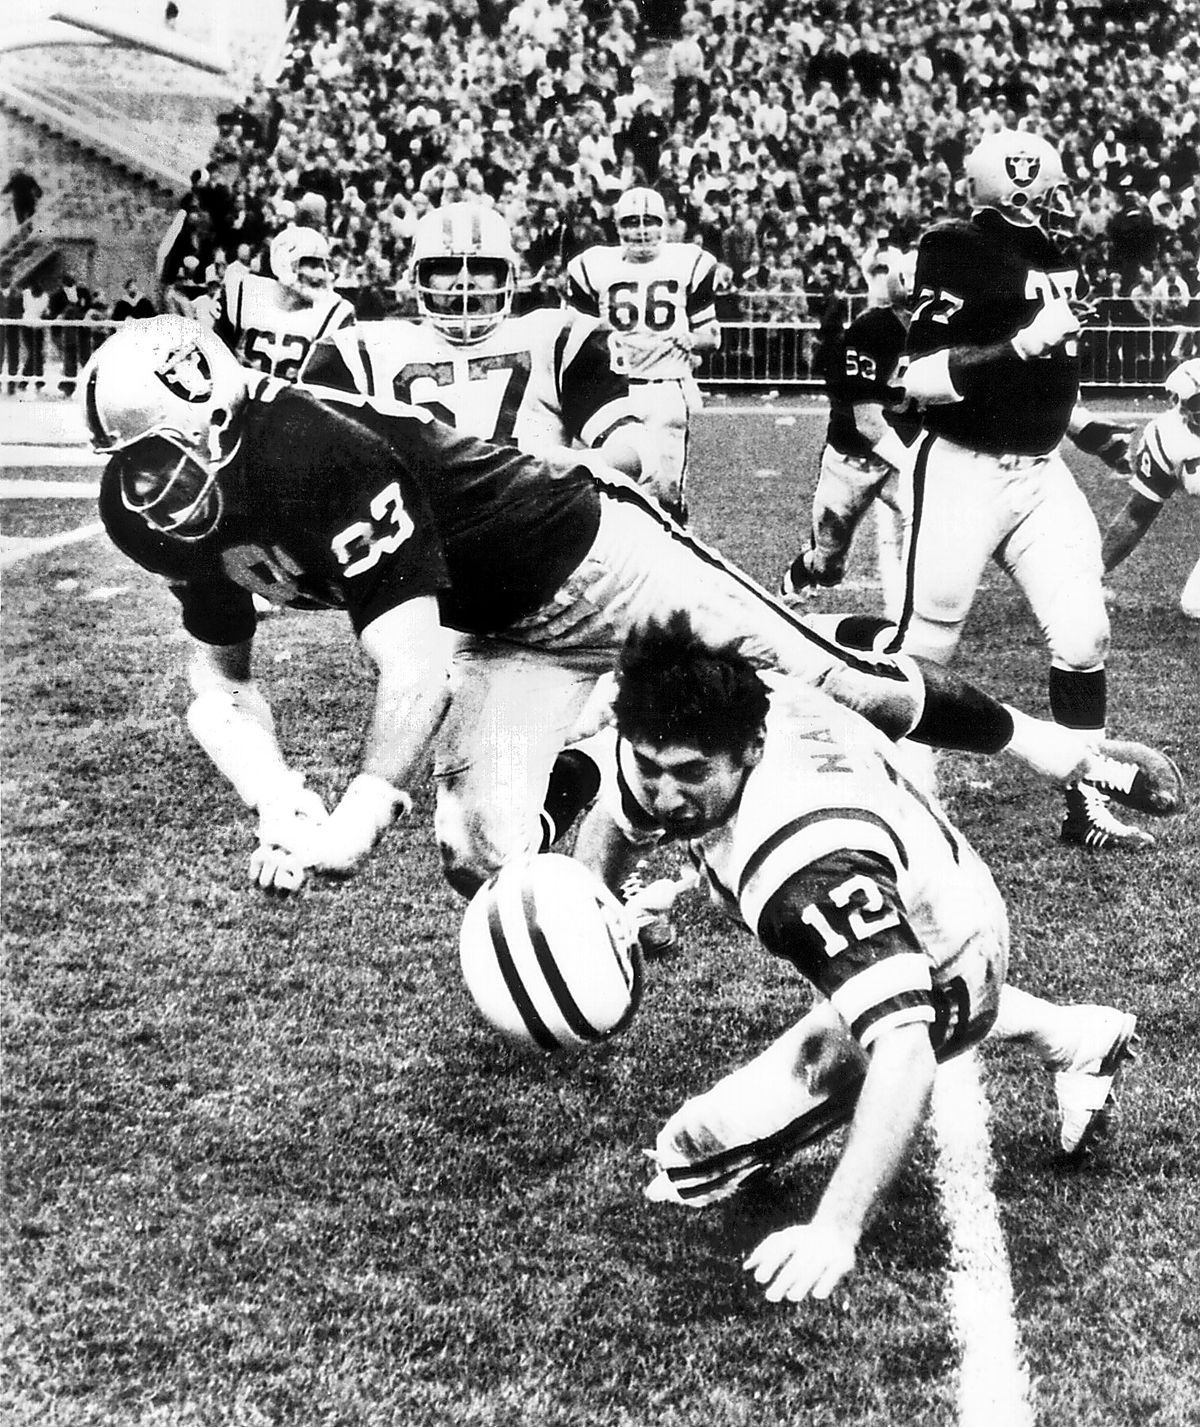 OAKLAND, CA - DECEMBER 12, 1967: Oakland Raiders defensive end Ben Davidson delivers a blow to New York Jets quarterback Joe Namath during this game in 1967 won by the Raiders. (Russ Reed/Oakland Tribune/Staff Archives)